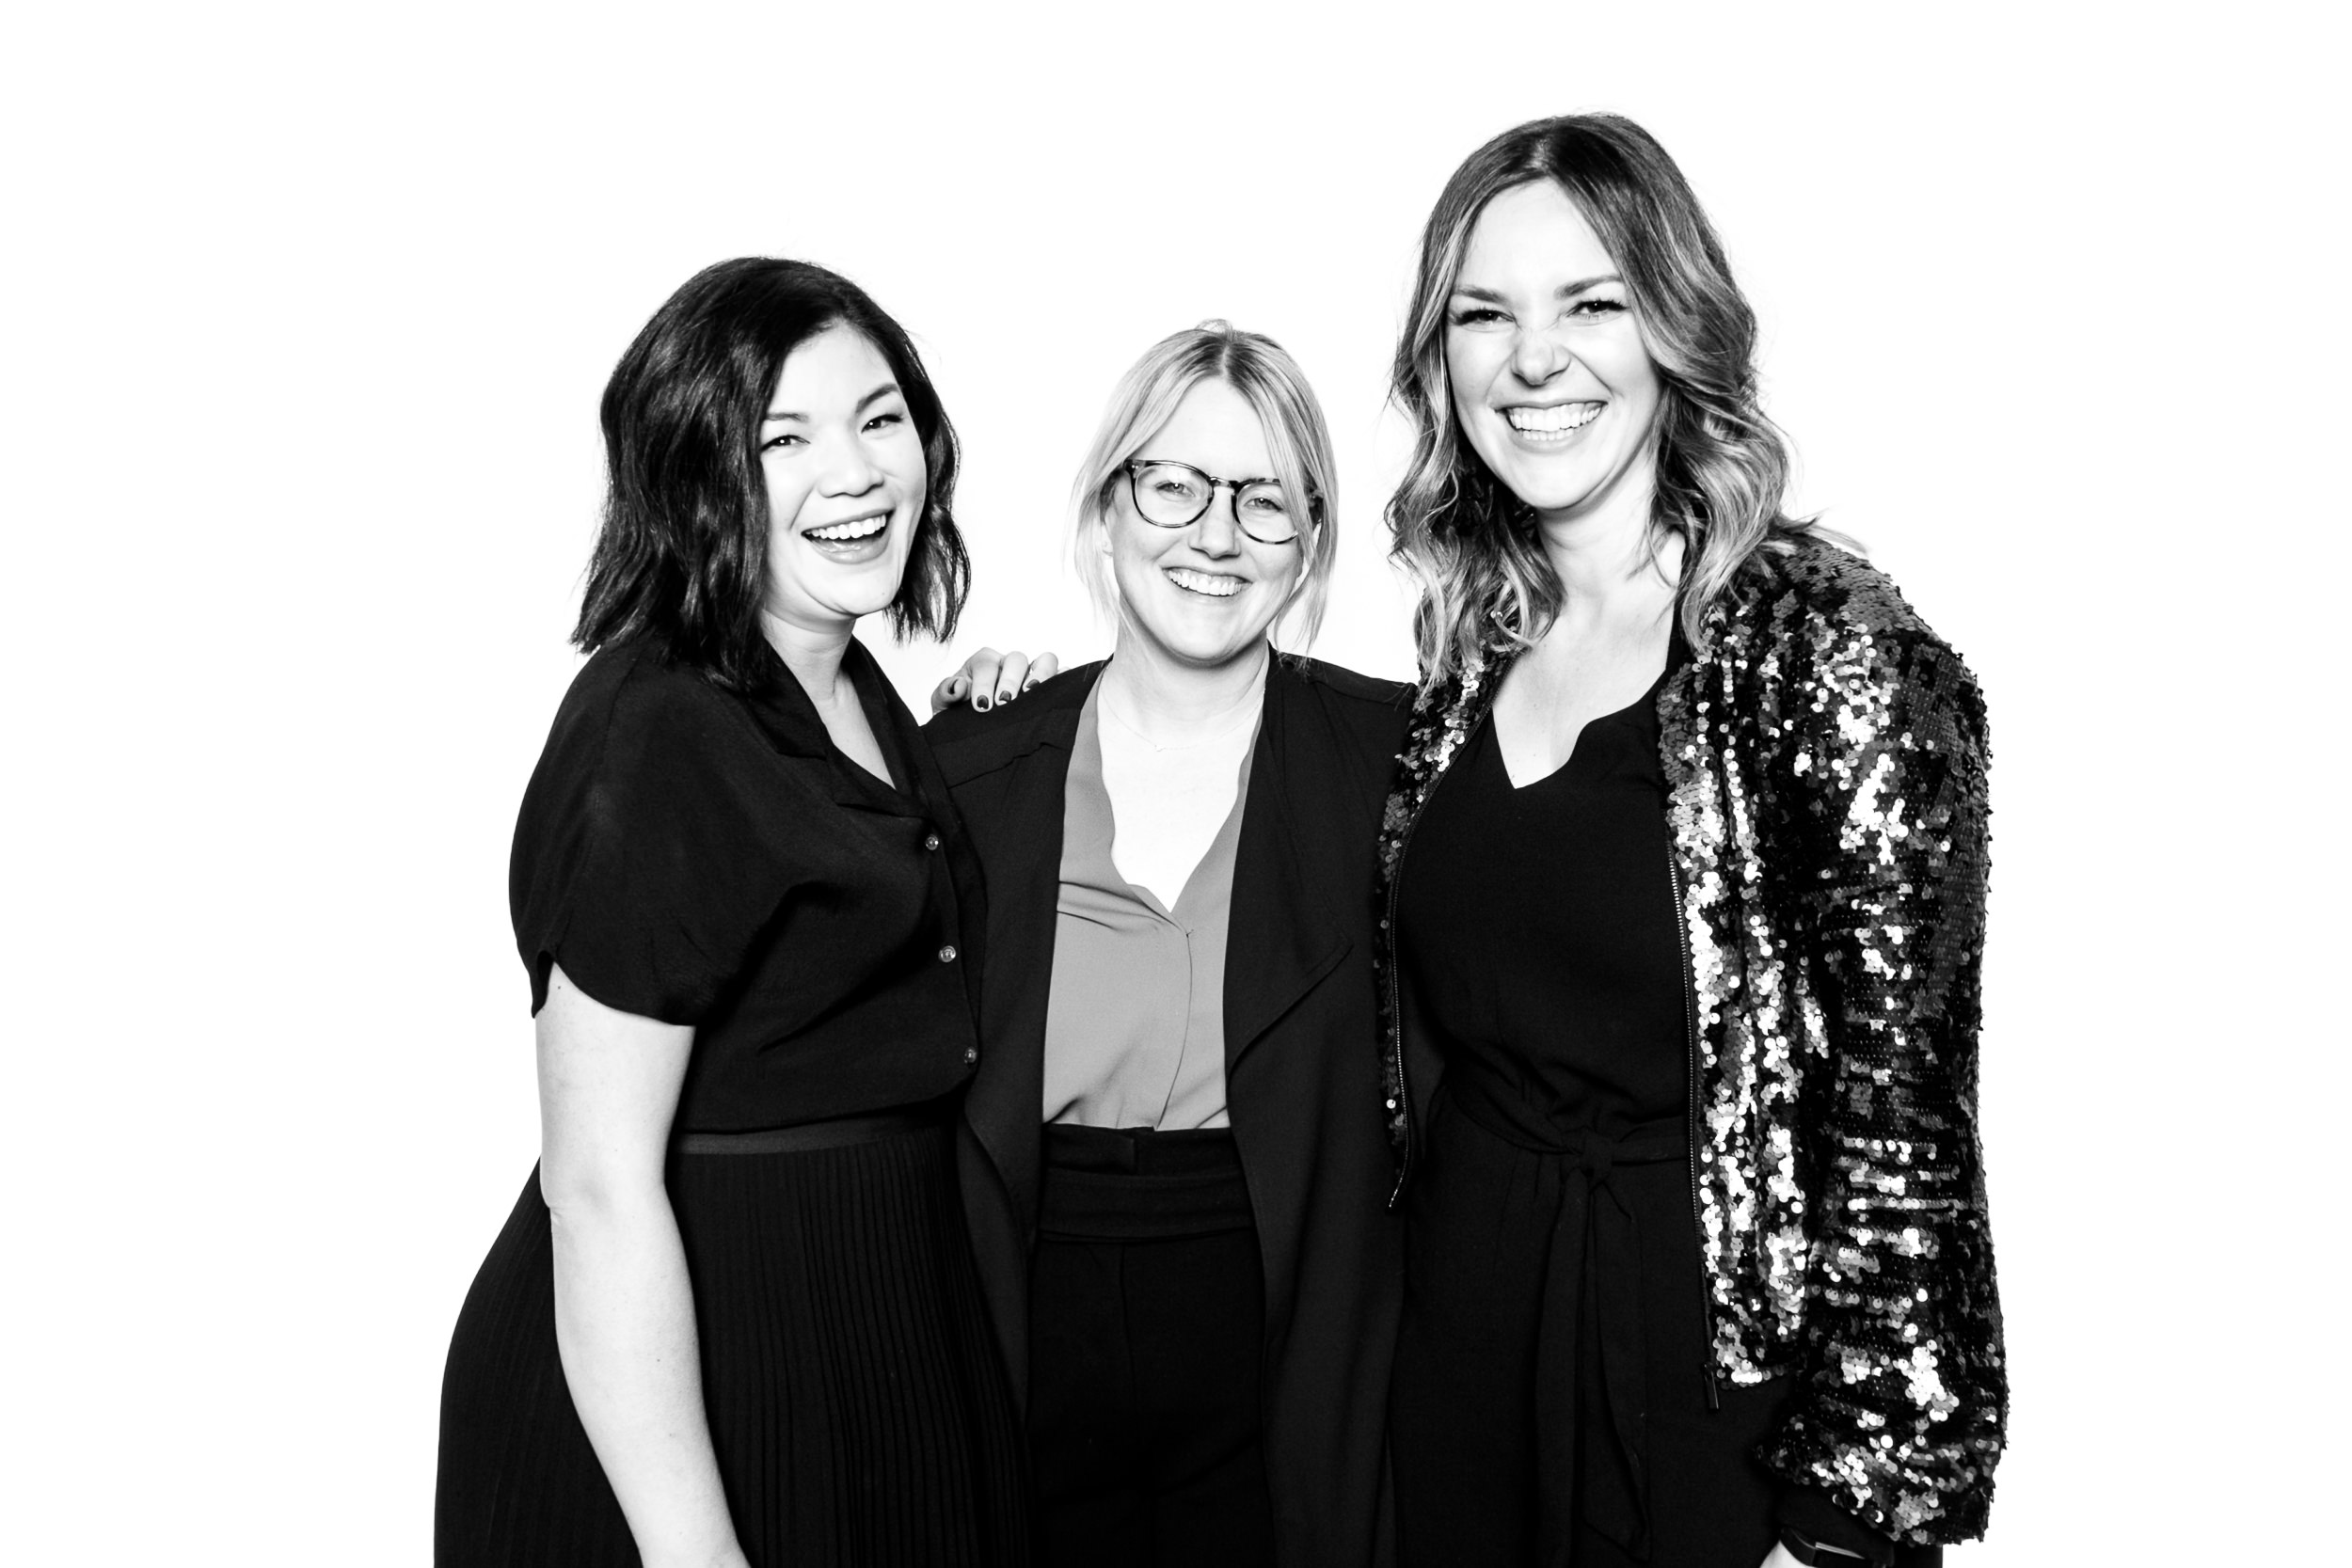 … and finally, the incredible #bossbabes behind The Bash. Shannon, Sarah and Natalie, you are an inspiration.